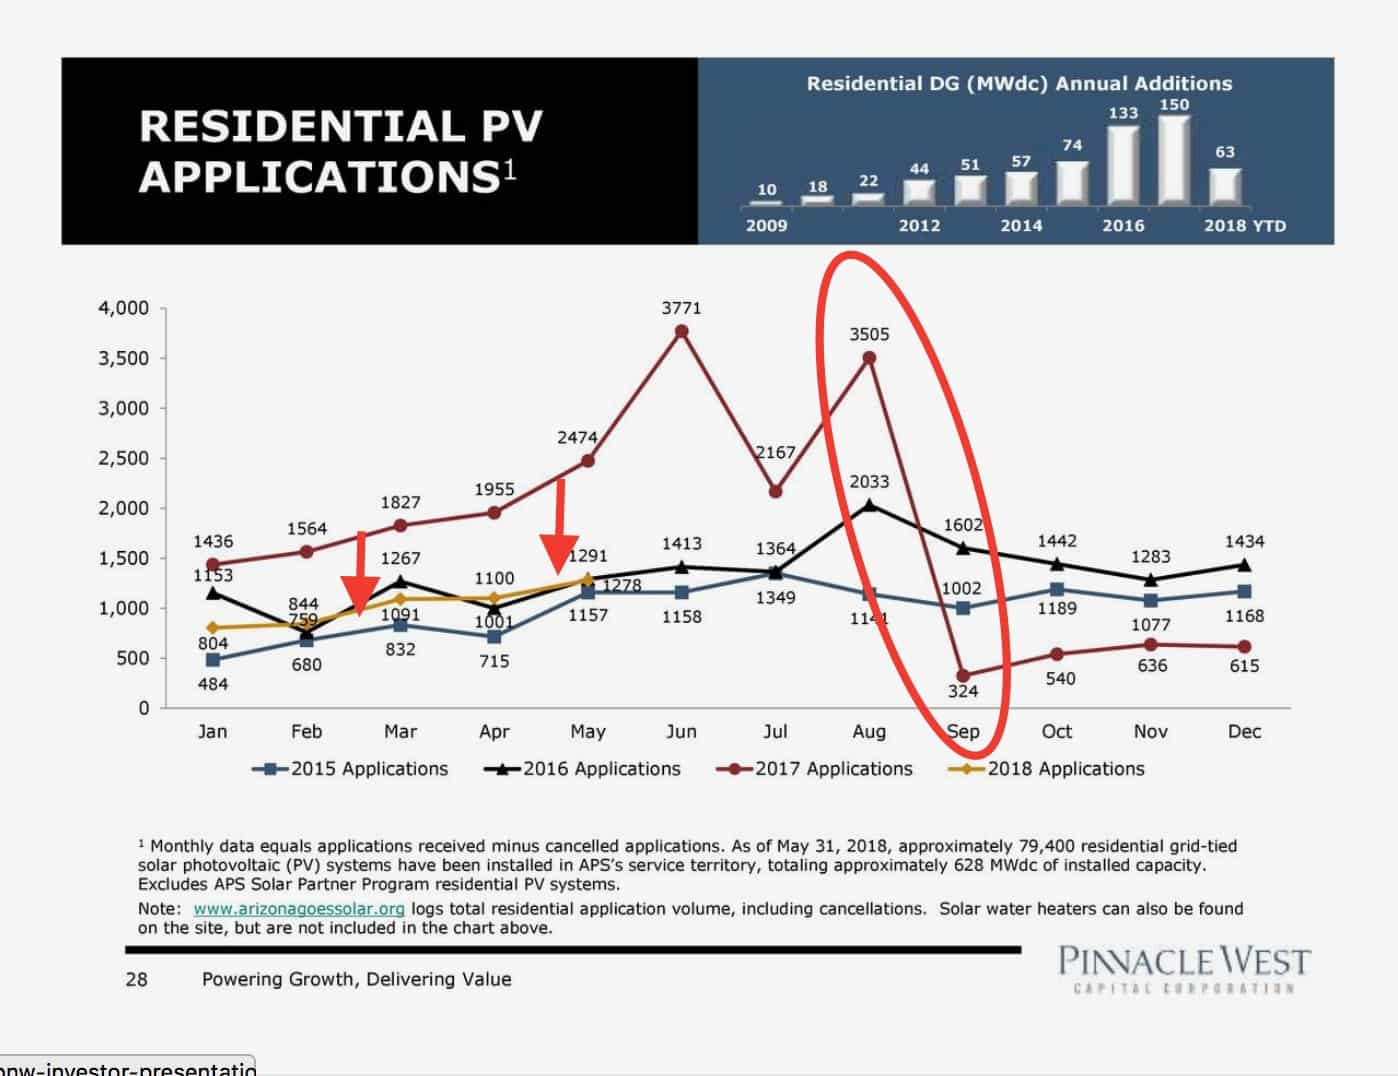 Pinnacle West investor slide showing decline of rooftop solar among APS customers after implementation of new rate structure.